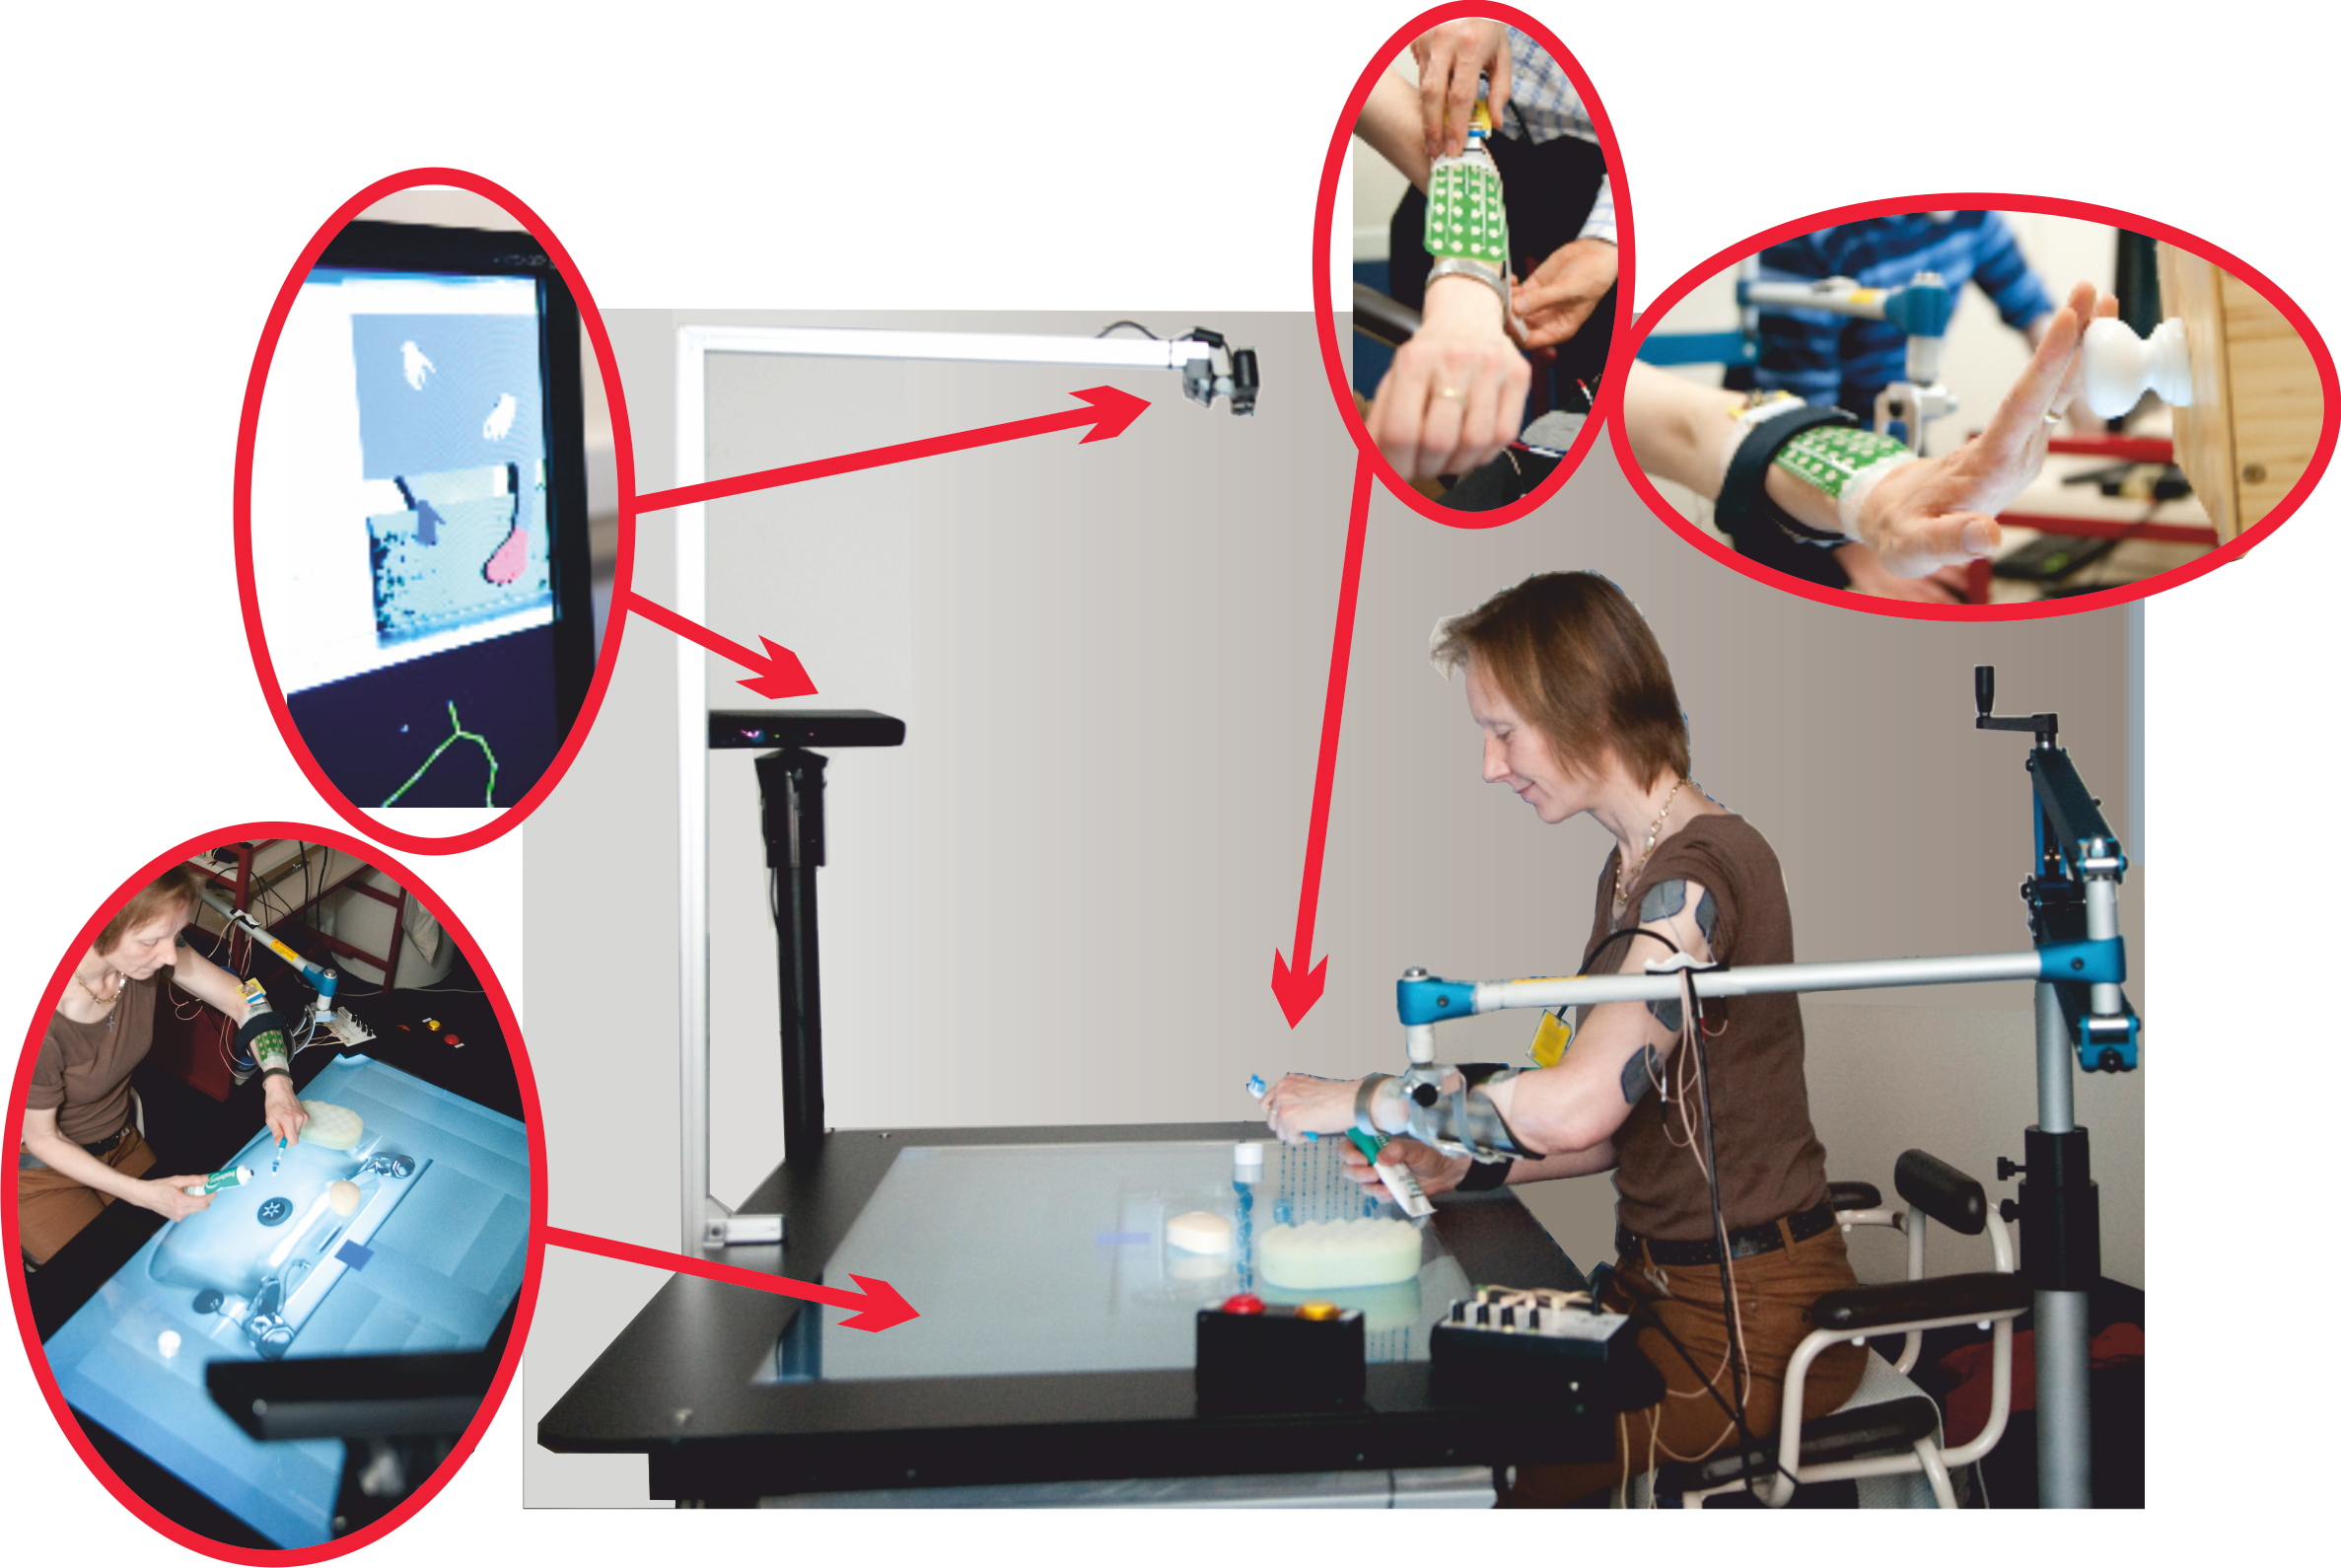 Stroke rehabilitation system using electrical stimulation array to activate muscle artificially